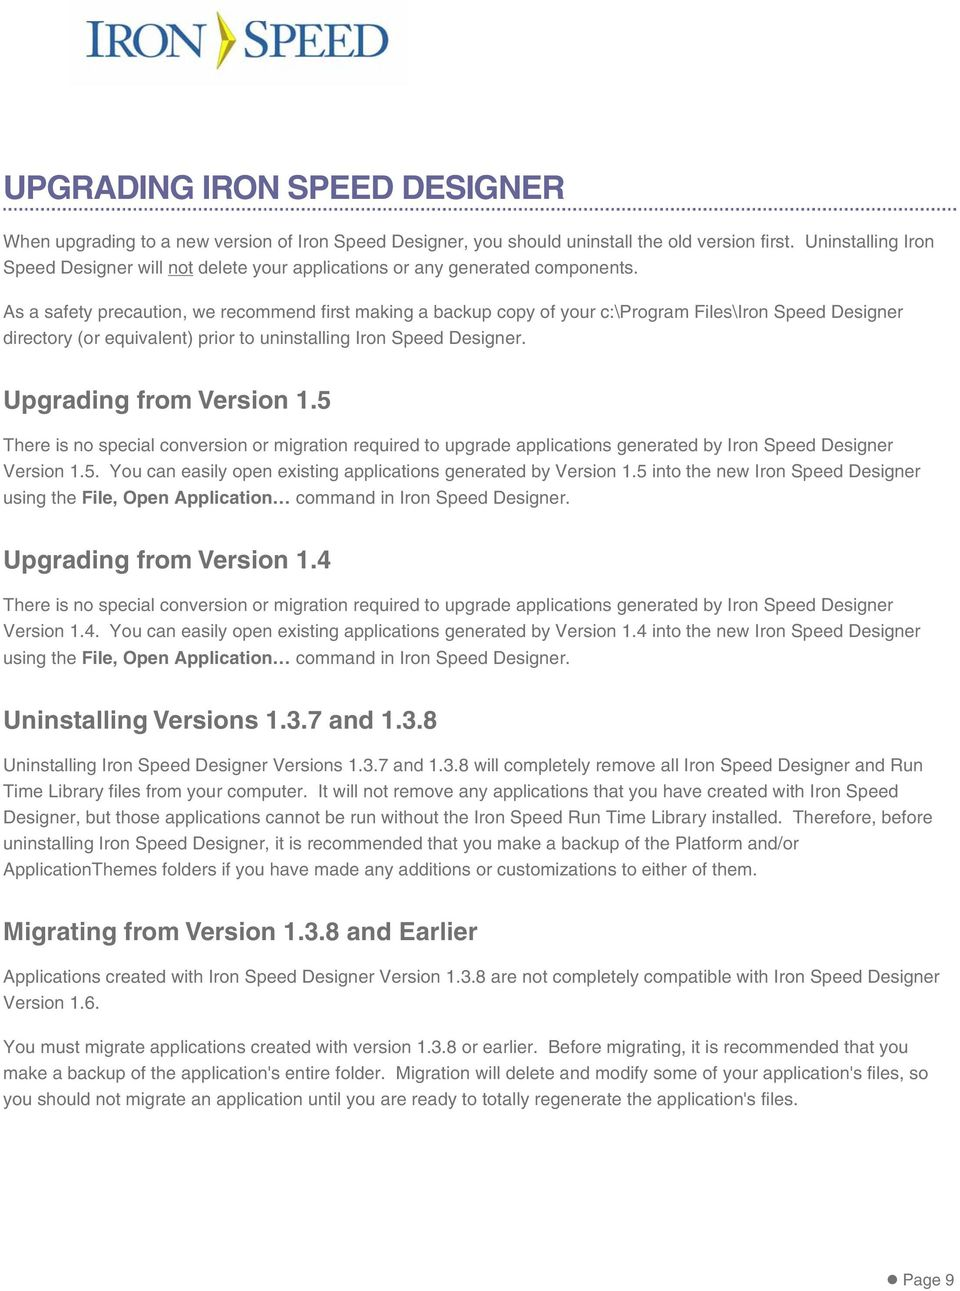 As a safety precaution, we recommend first making a backup copy of your c:\program Files\Iron Speed Designer directory (or equivalent) prior to uninstalling Iron Speed Designer.